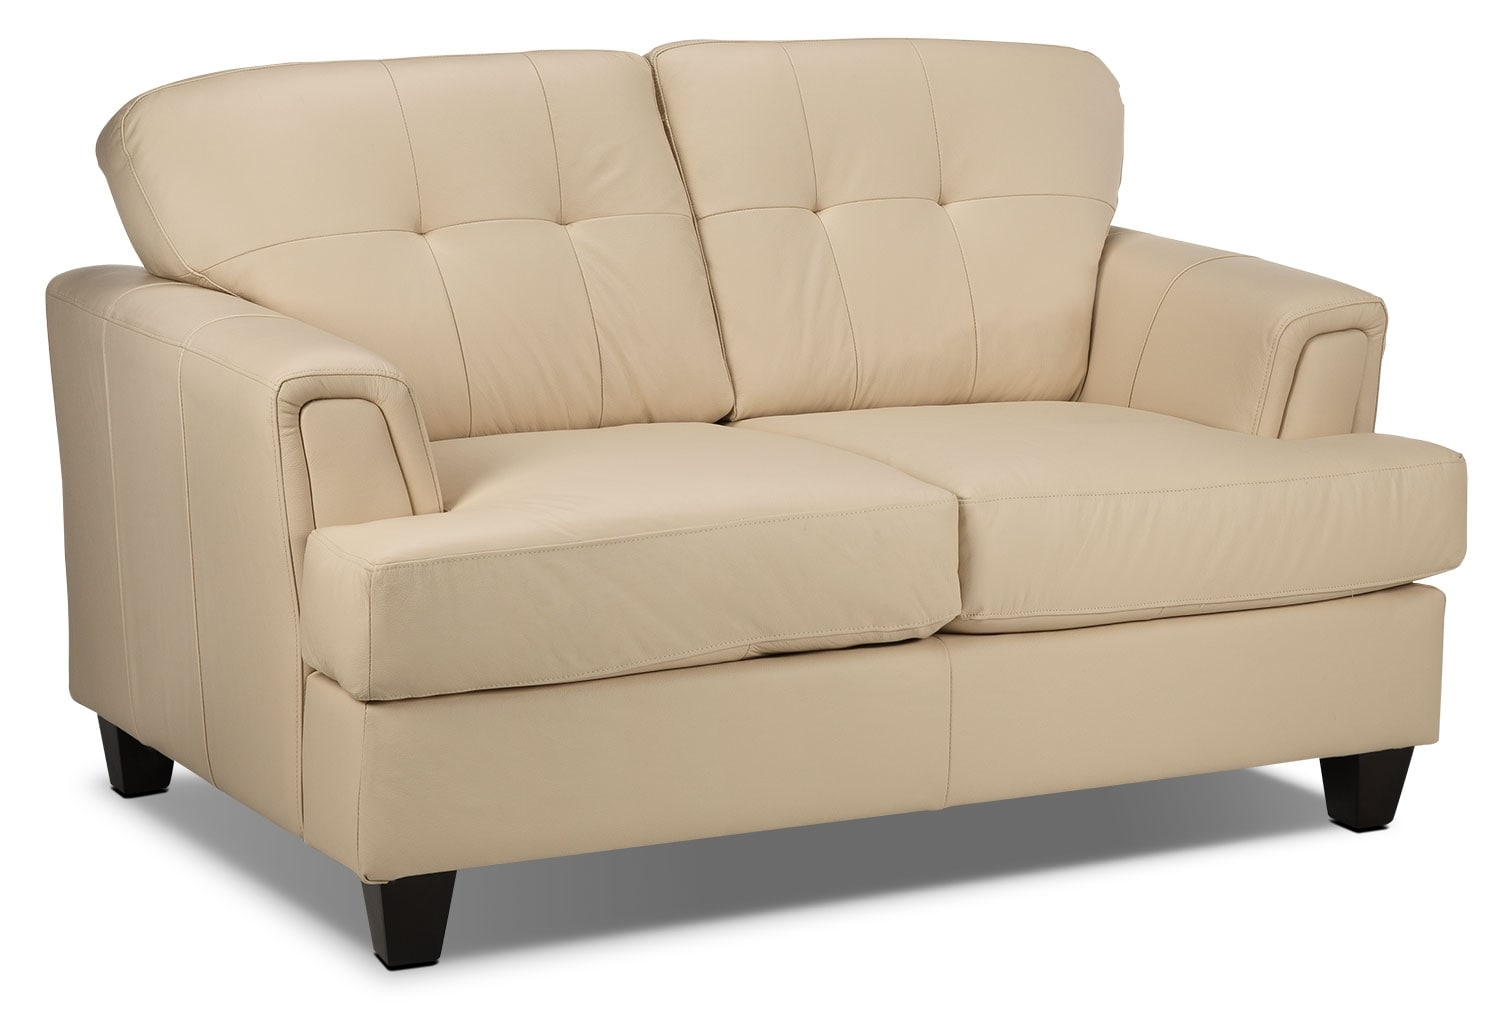 Spencer Loveseat - Light Beige